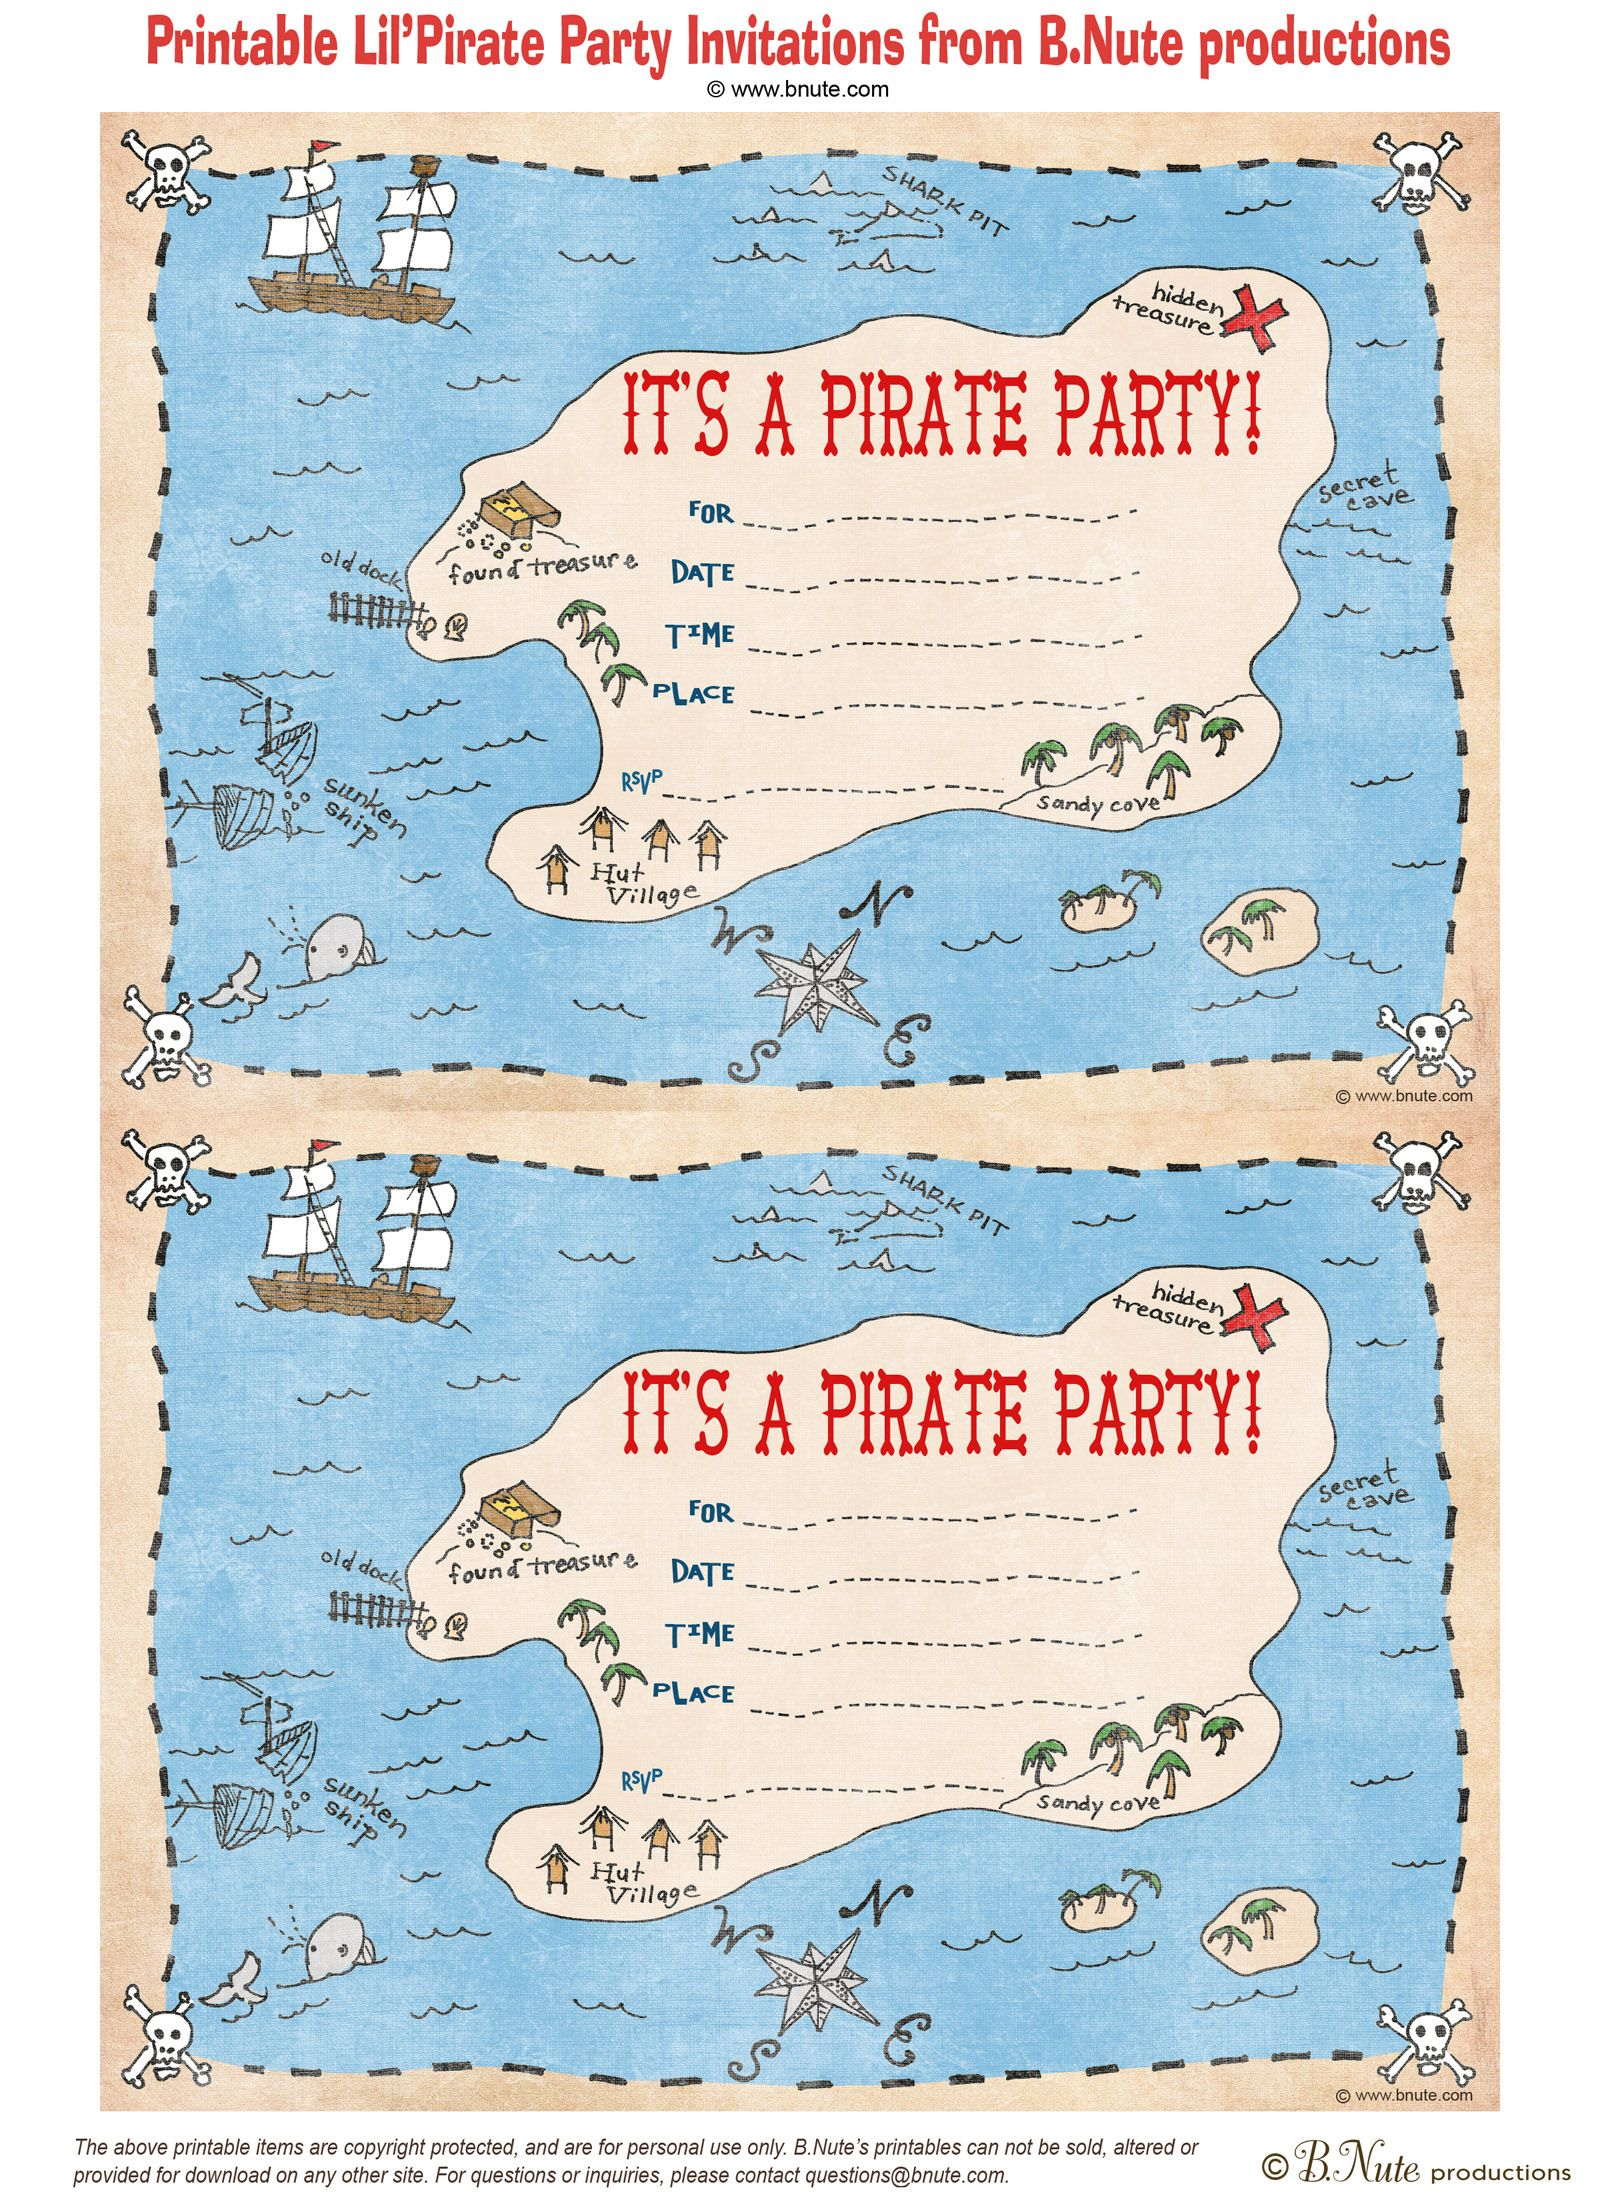 Bnute Productions Free Printable Pirate Party Invitations Pirate Party Invitations Pirate Birthday Party Pirate Theme Party